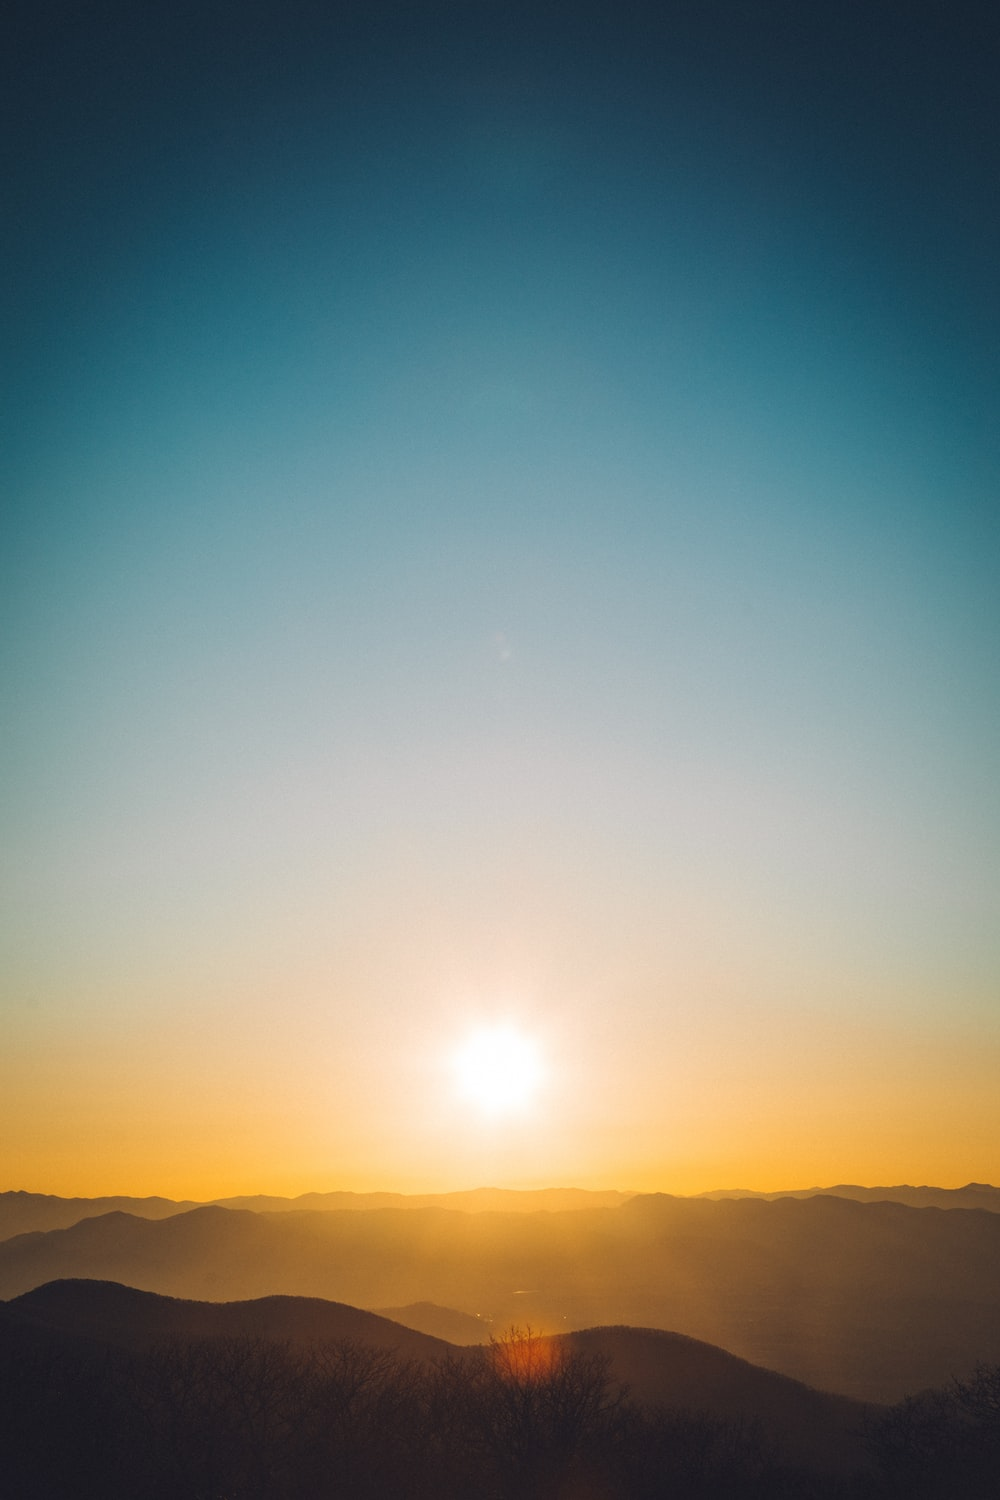 silhouette of hills at golden hour